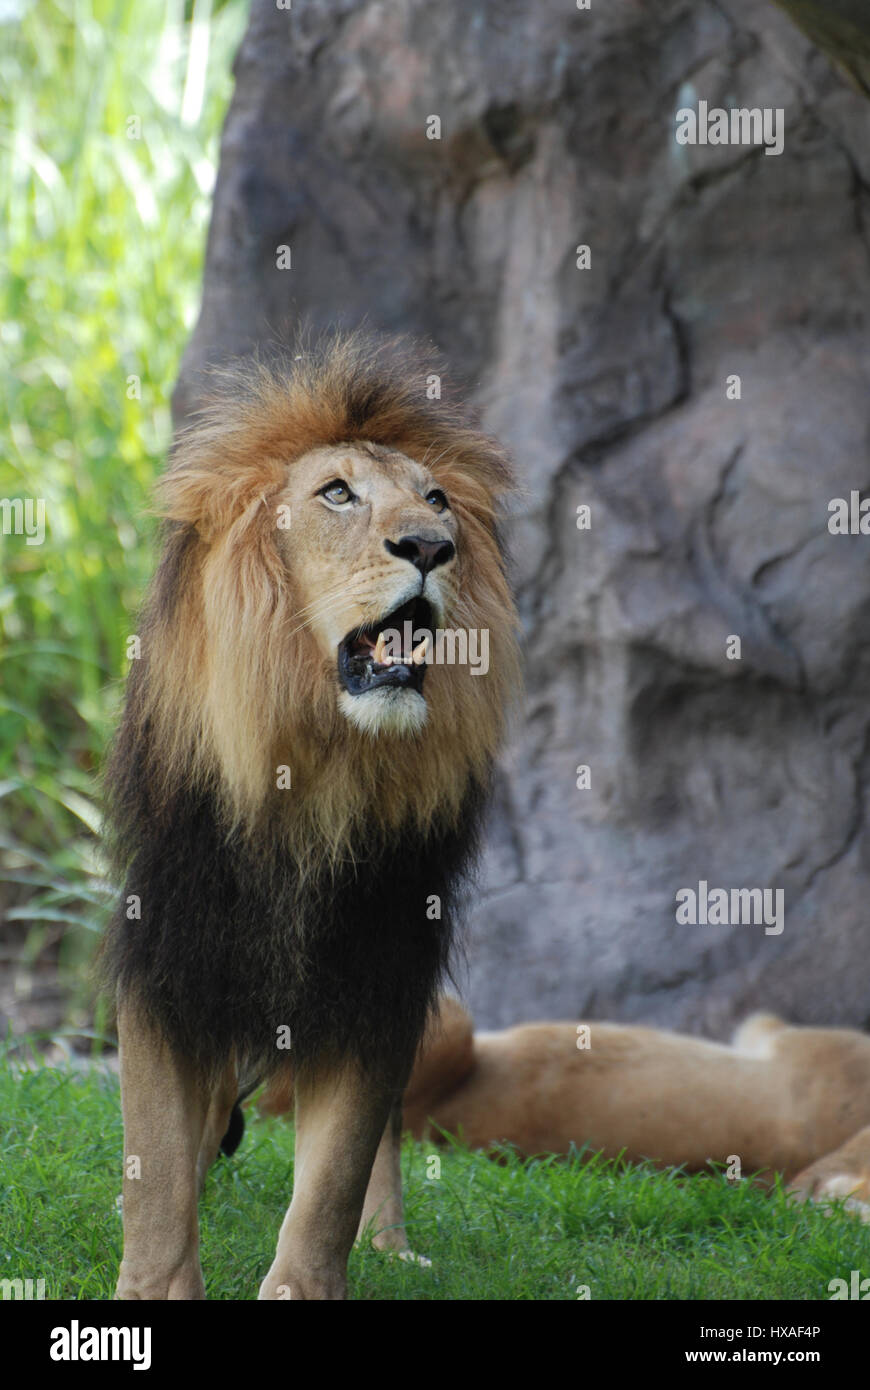 Large lion with his mouth open showing his teeth as he growls. - Stock Image